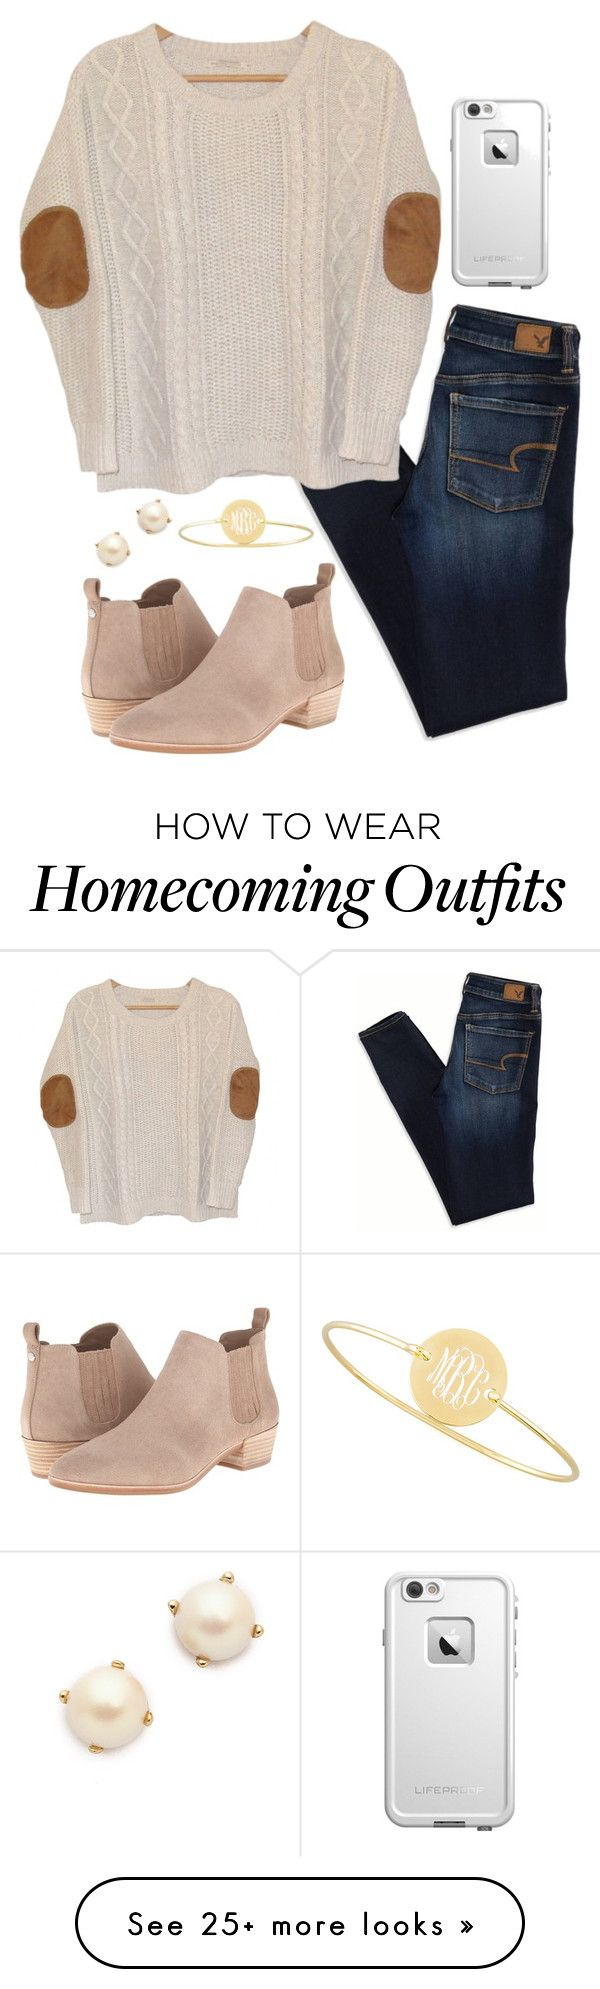 """""""got asked to homecoming today"""" by mmorgann on Polyvore featuring MICHAEL Michael Kors, American Eagle Outfitters, Urban Outfitters, LifeProof, Kate Spade and Sarah Chloe"""